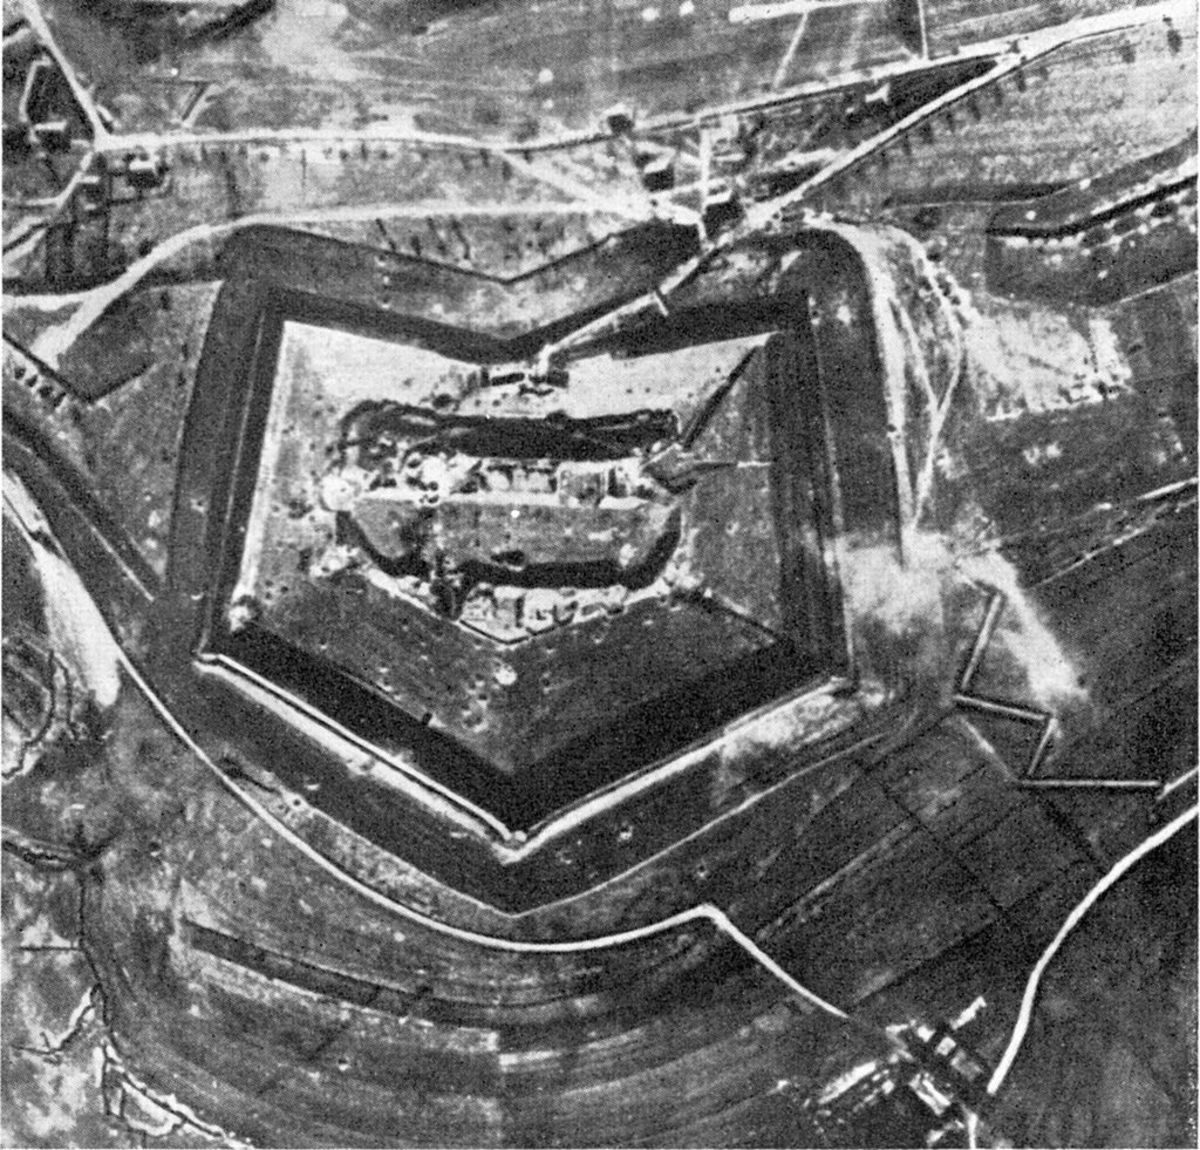 Fort Douaumont the largest of the nineteen forts located on the frontier outside of Verdun before the battle.